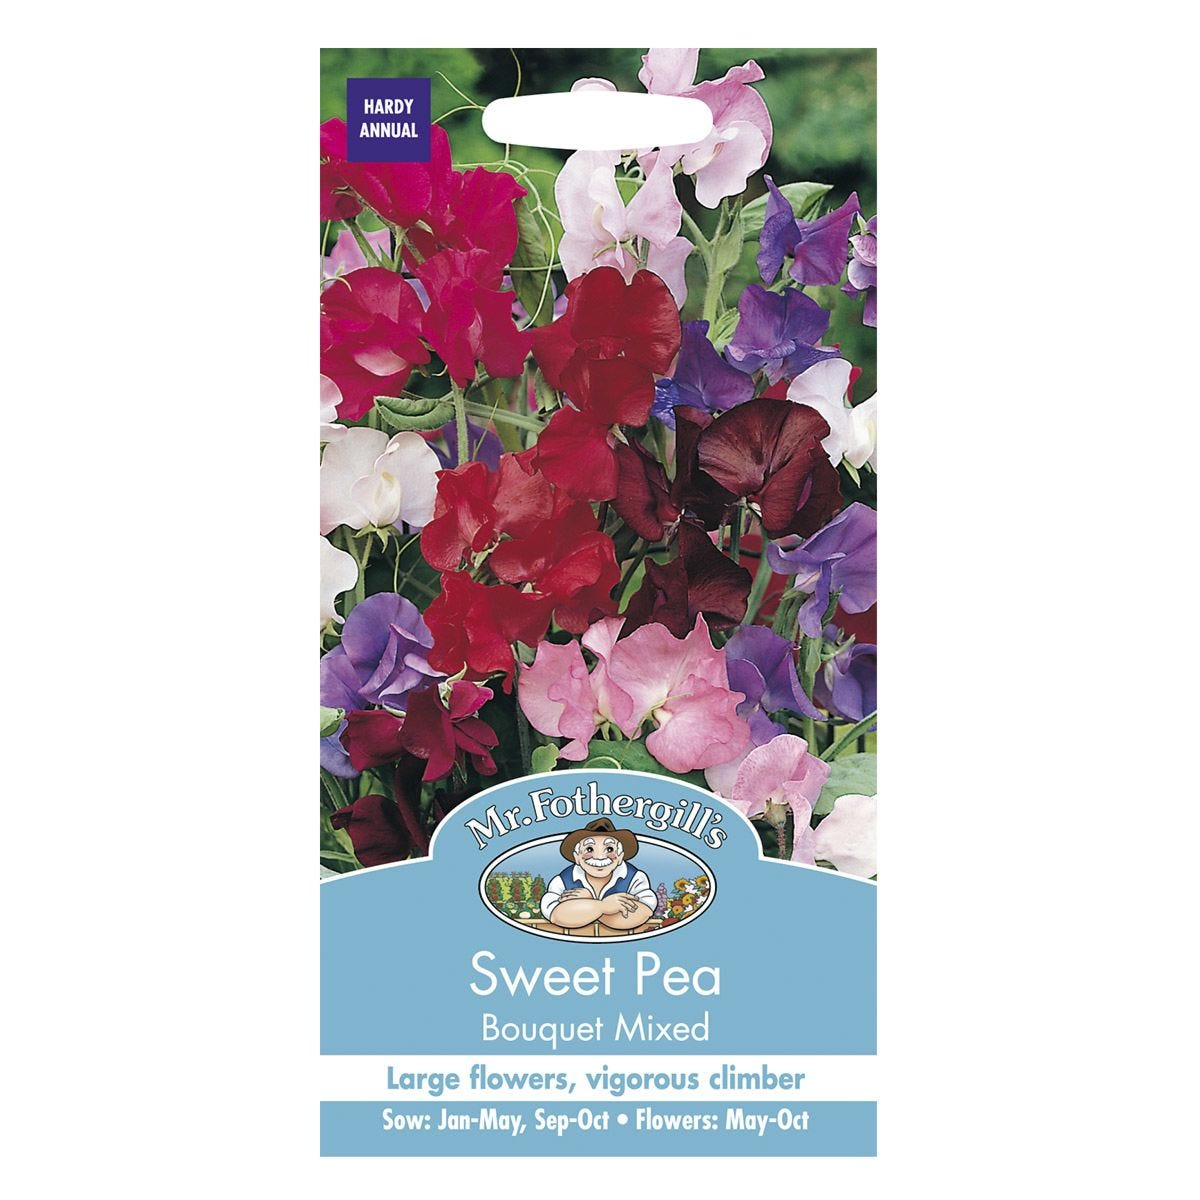 Mr Fothergill's Sweet Pea Bouquet Mixed Seeds